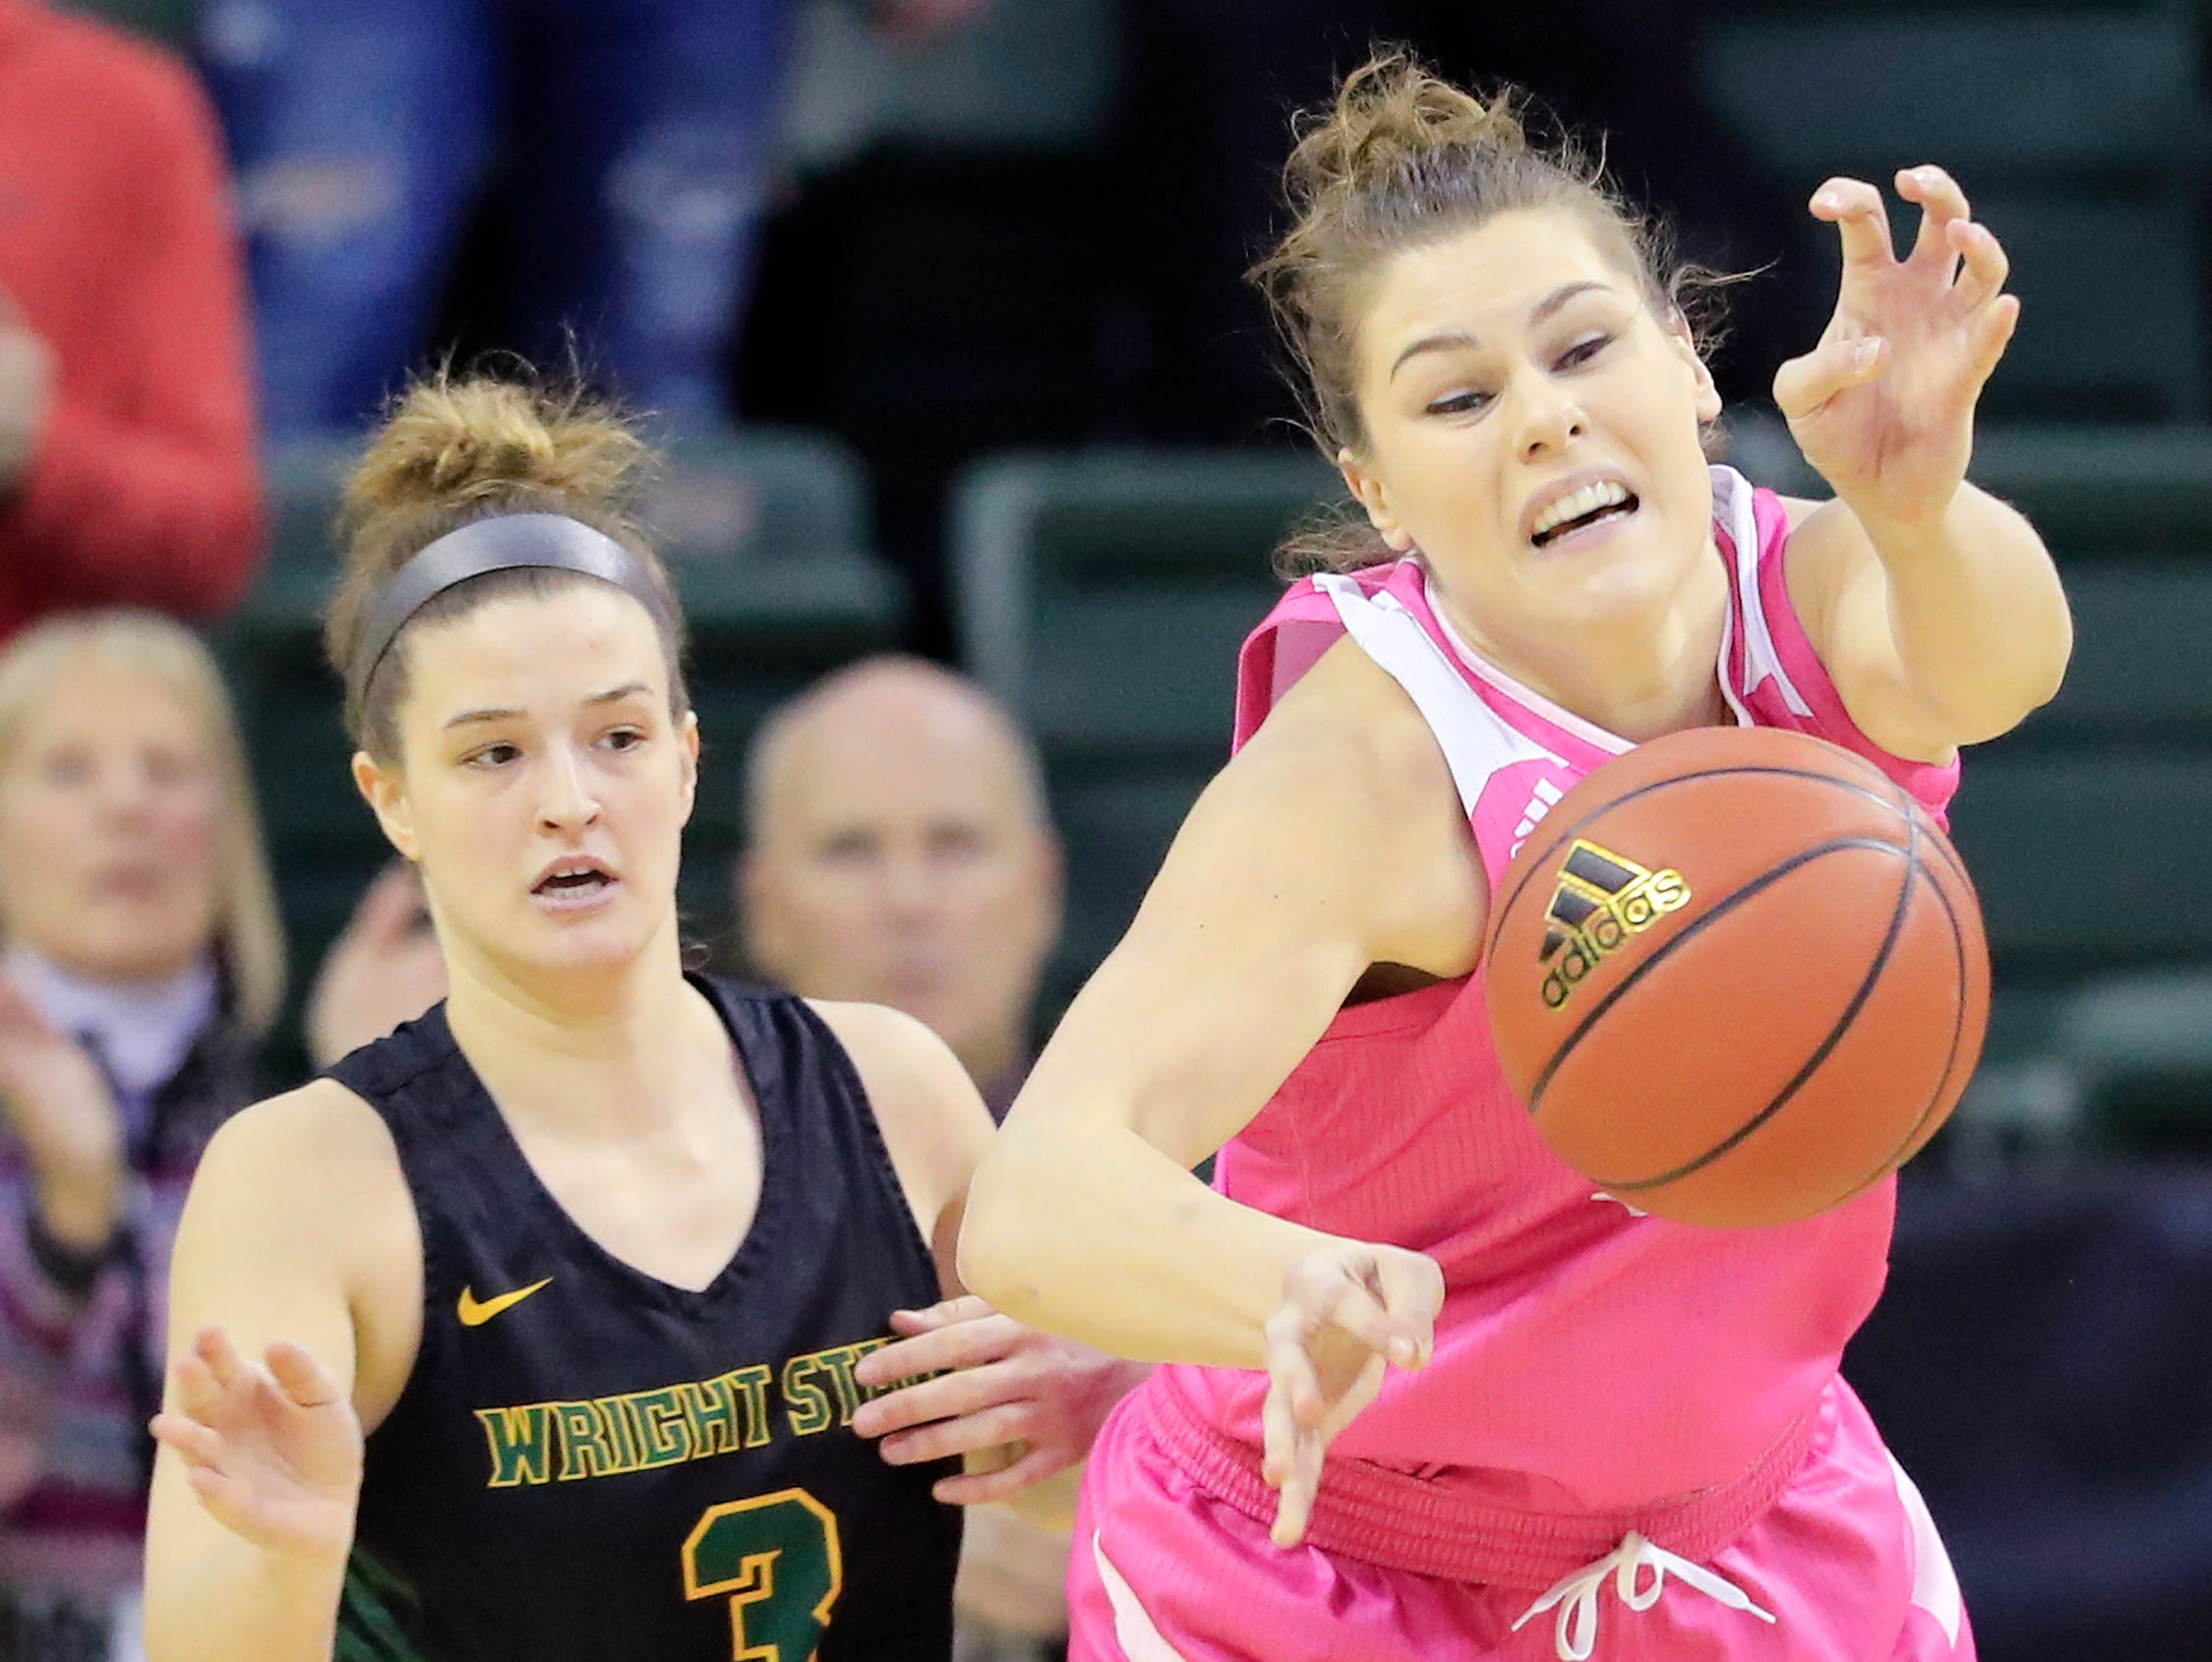 Green Bay Phoenix forward/center Madison Wolf (52) gets fouled by Wright State Raiders guard Emily Vogelpohl (3) in a Horizon League women's basketball game at the Kress Center on Saturday, February 9, 2019 in Green Bay, Wis.